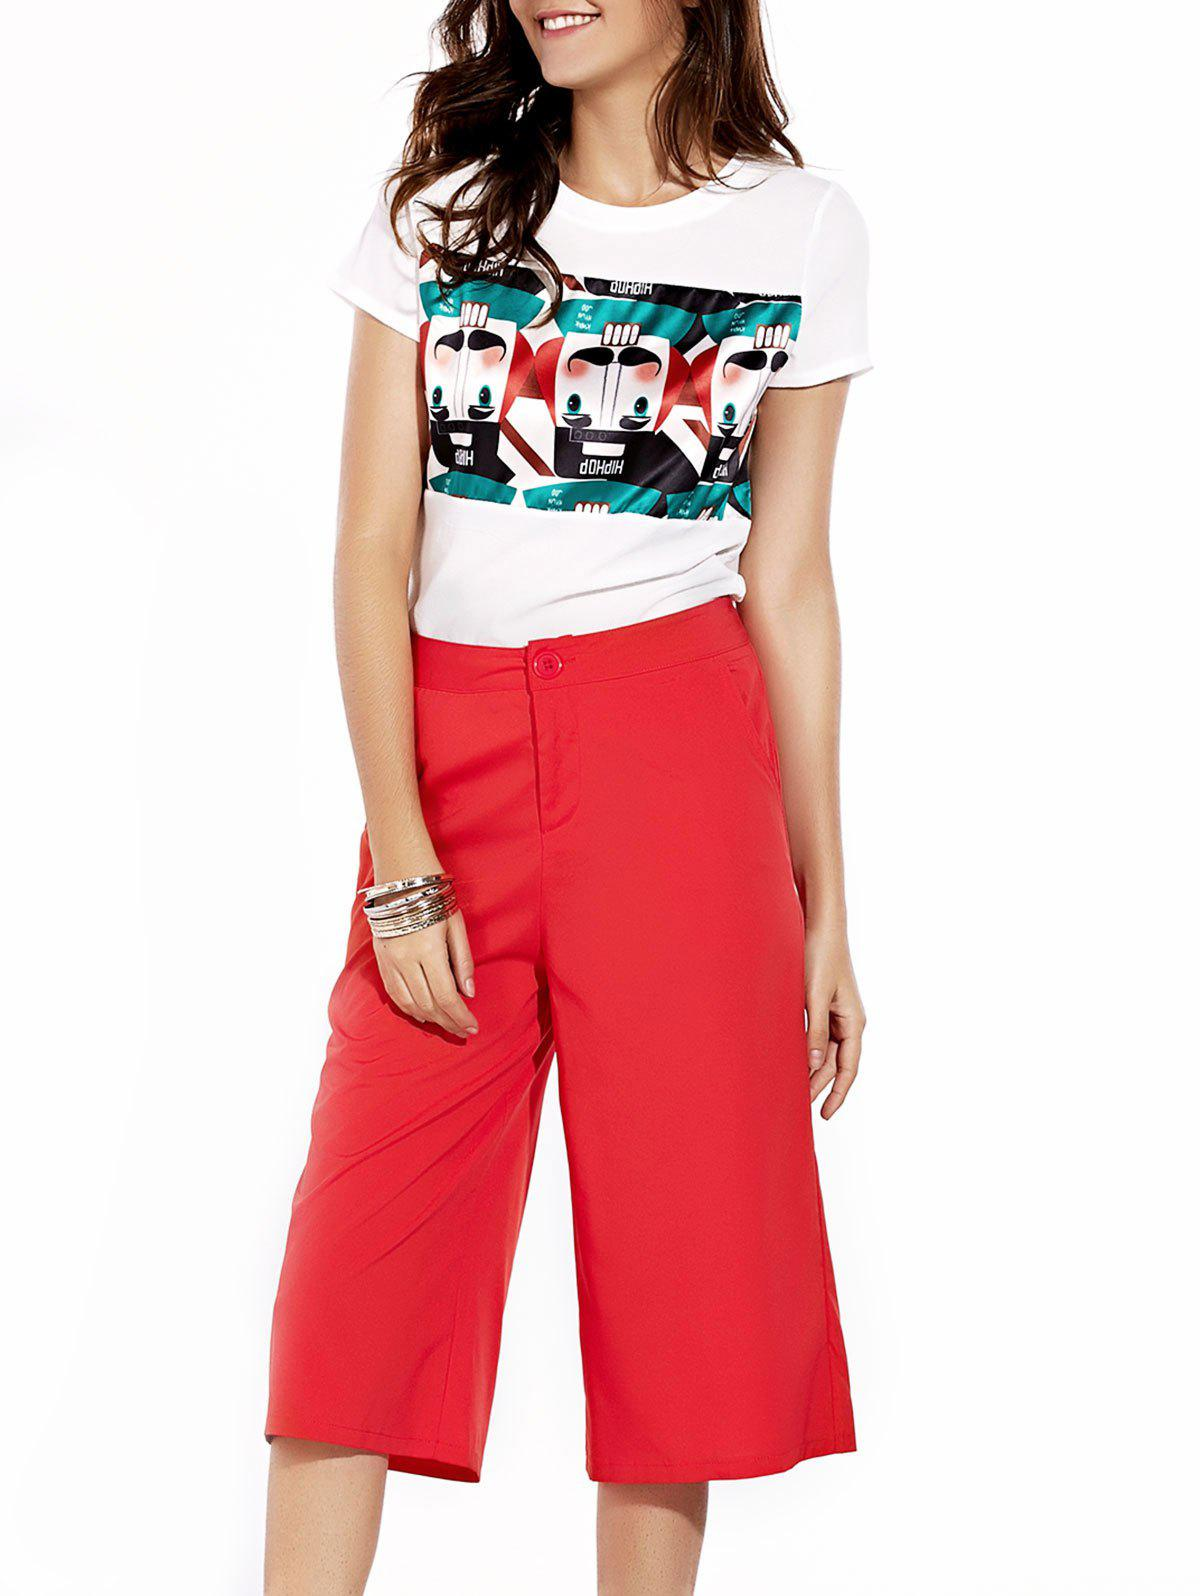 Stylish Women's Jewel Neck T-Shirt and Solid Color Pants Set - RED L